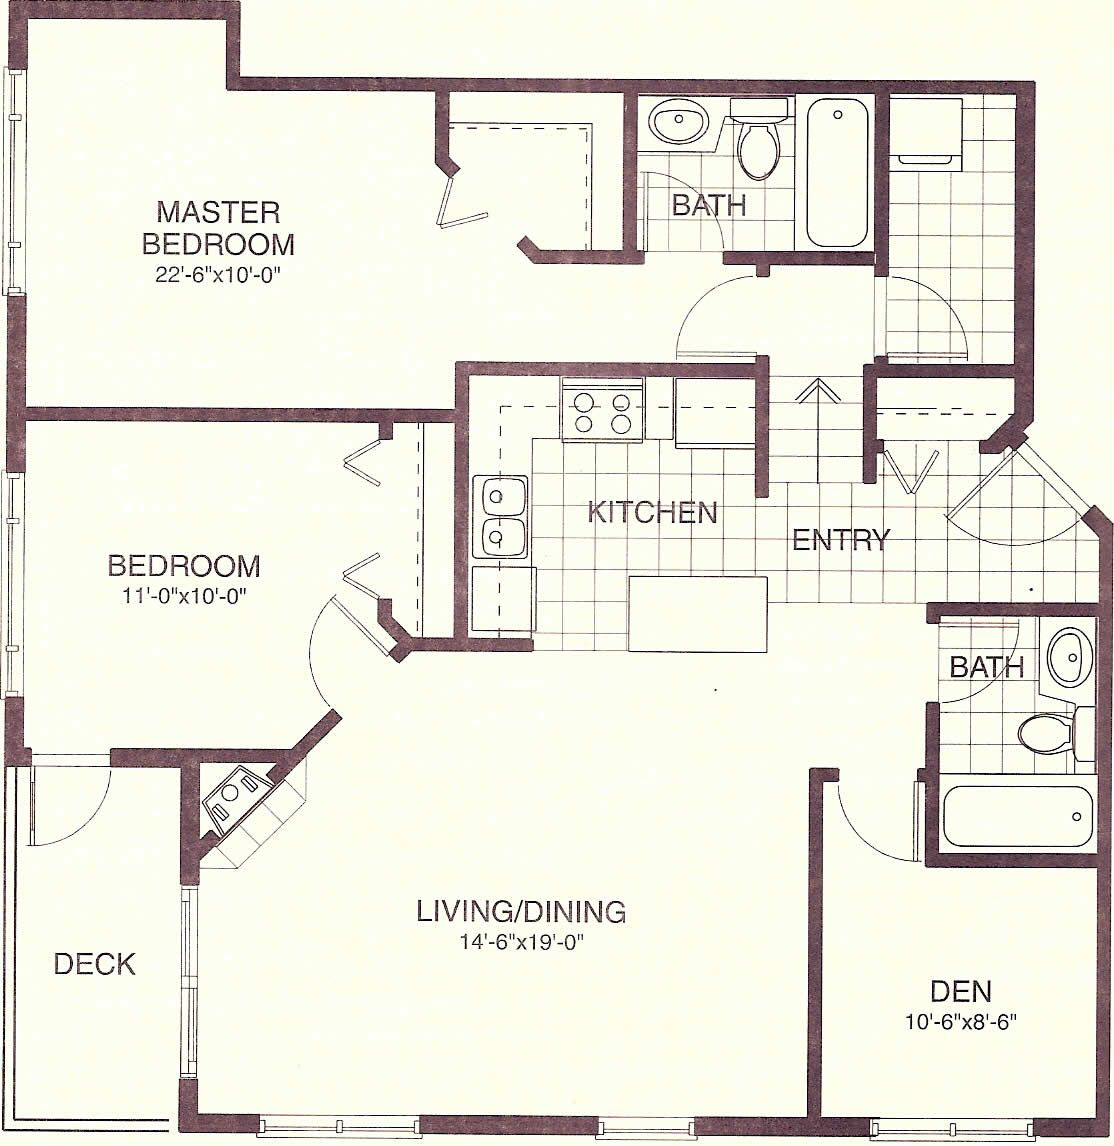 1000 sq ft house plans images 1000 sq feet house plans